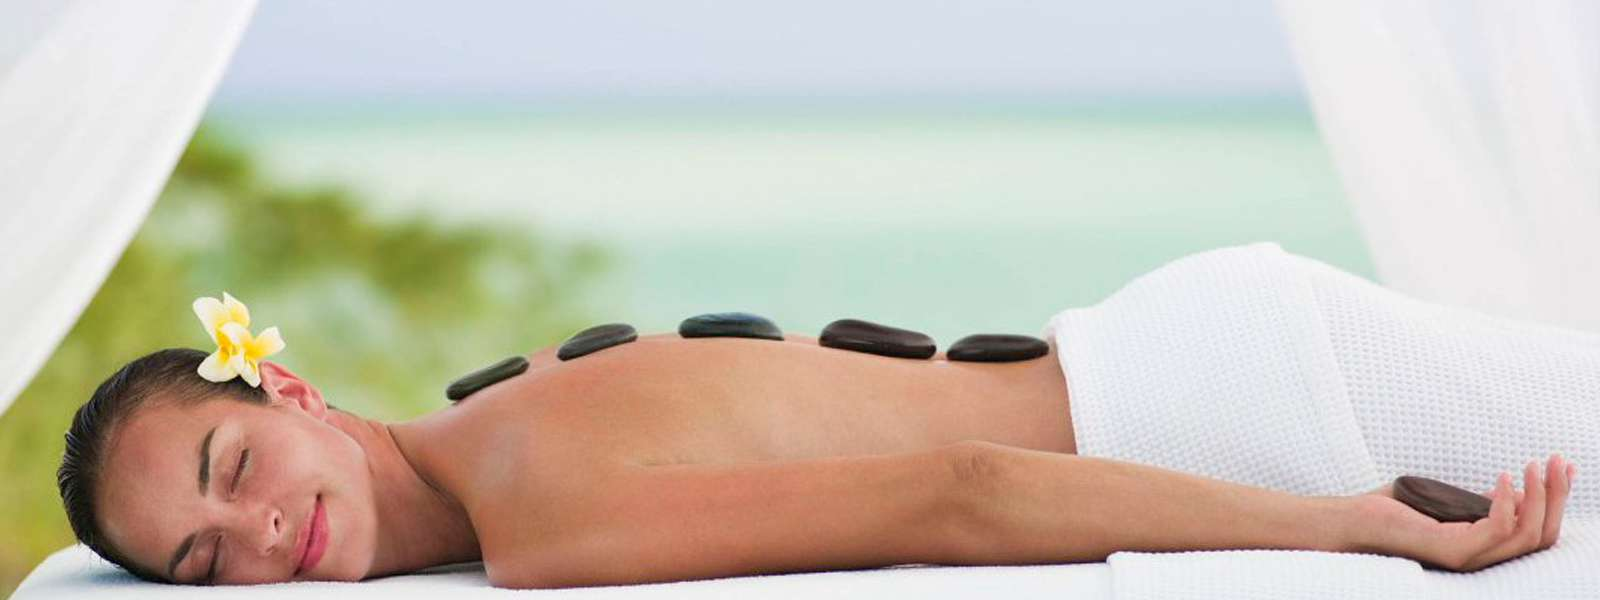 Wellness & Spa | Beach Club Estrella del Mar